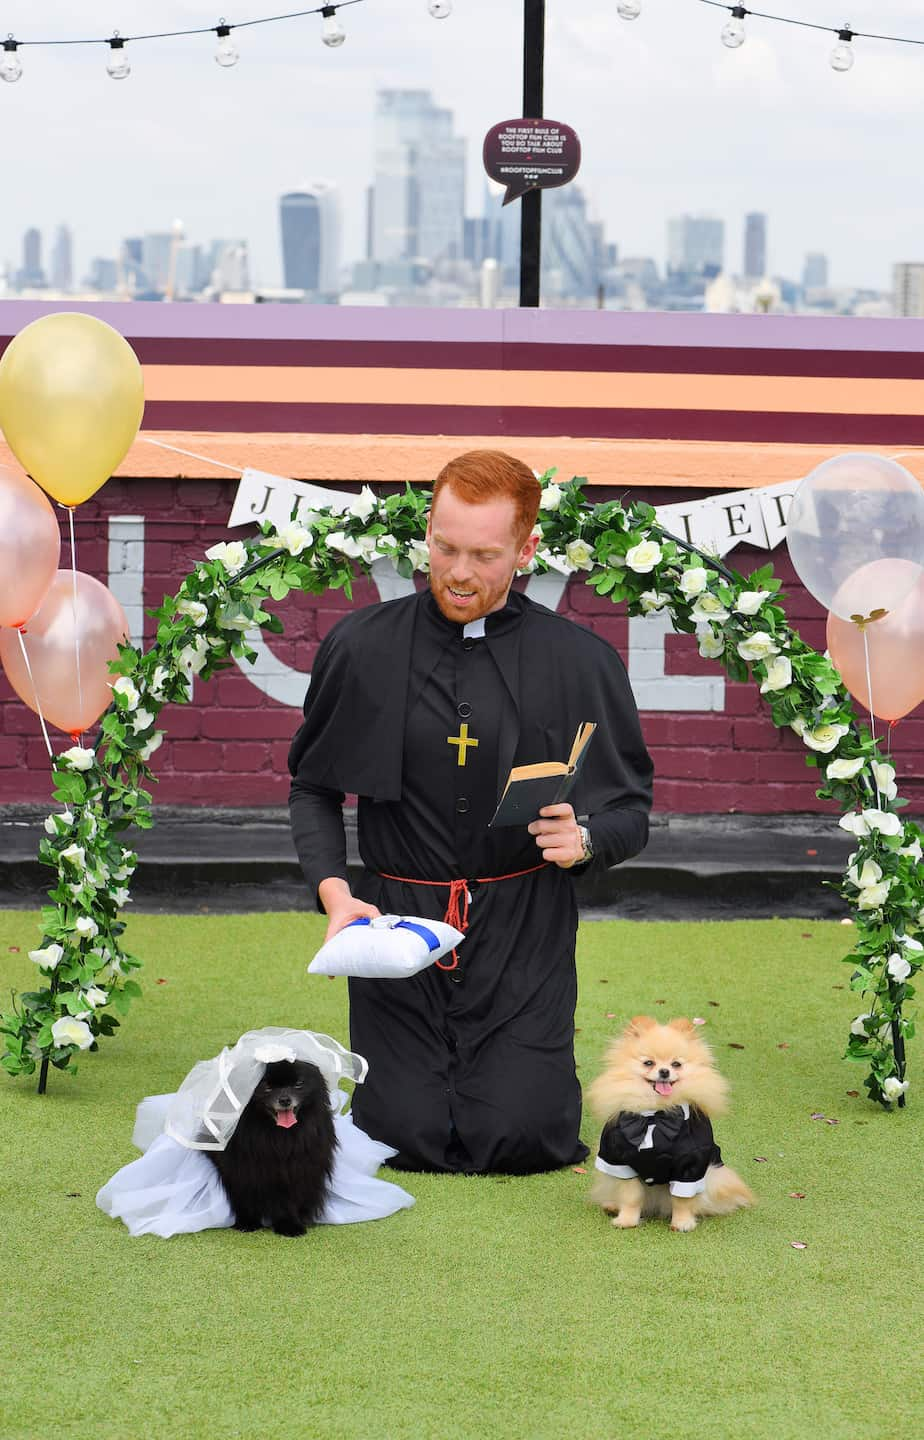 London Dog Wedding At The Rooftop Film Club Wooftop Wedding Service 6